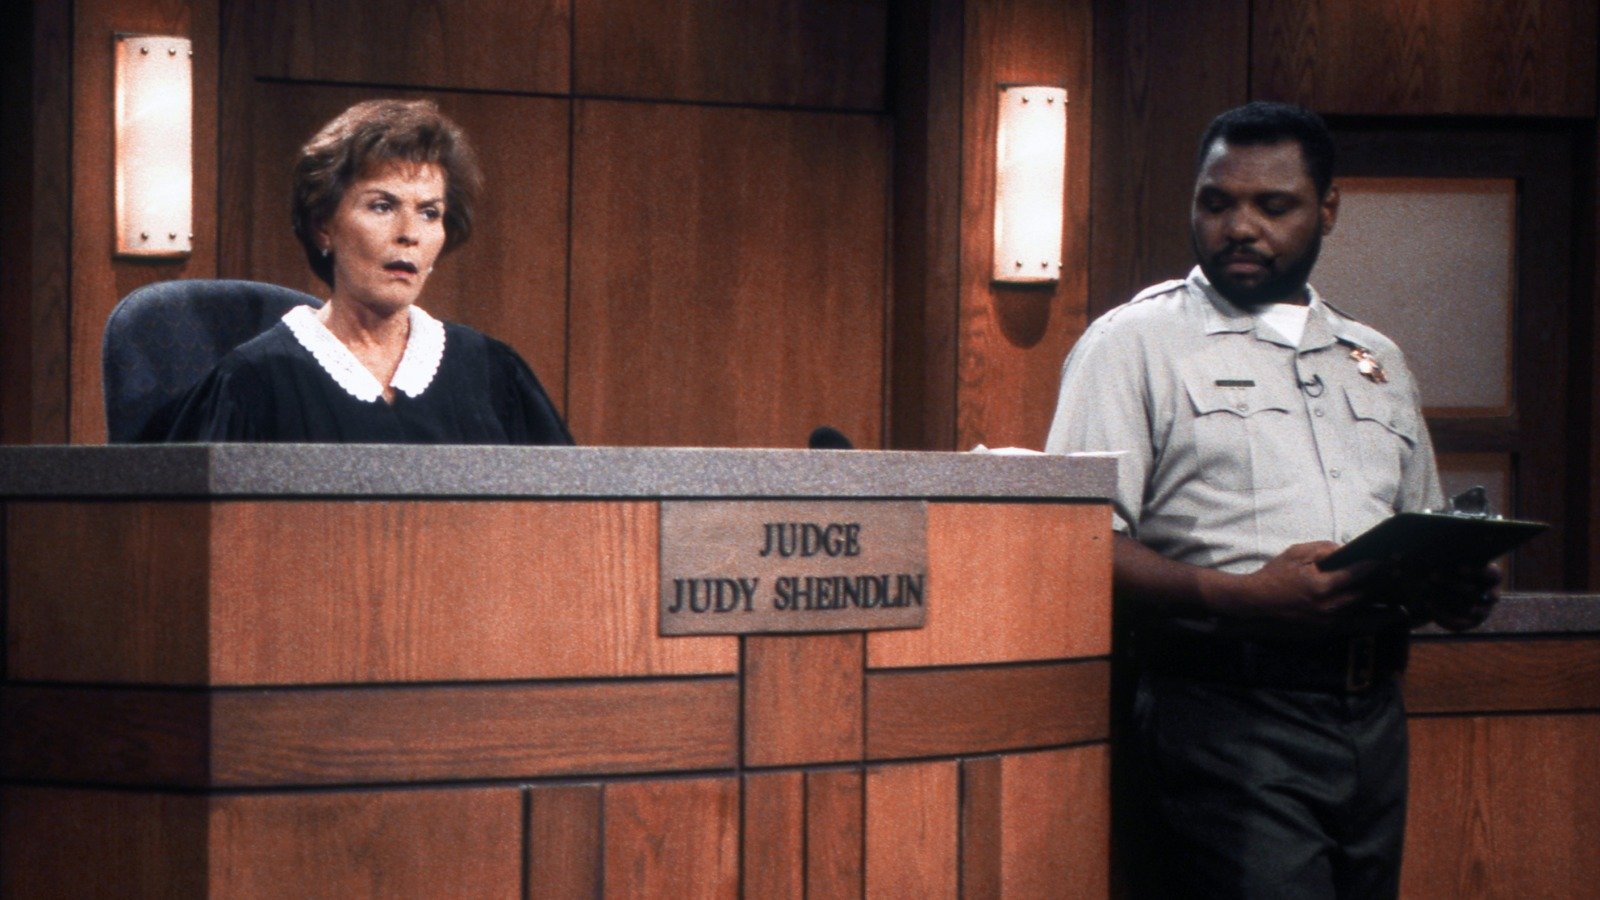 Inside Judge Judy's Friendship With Her Bailiff Byrd